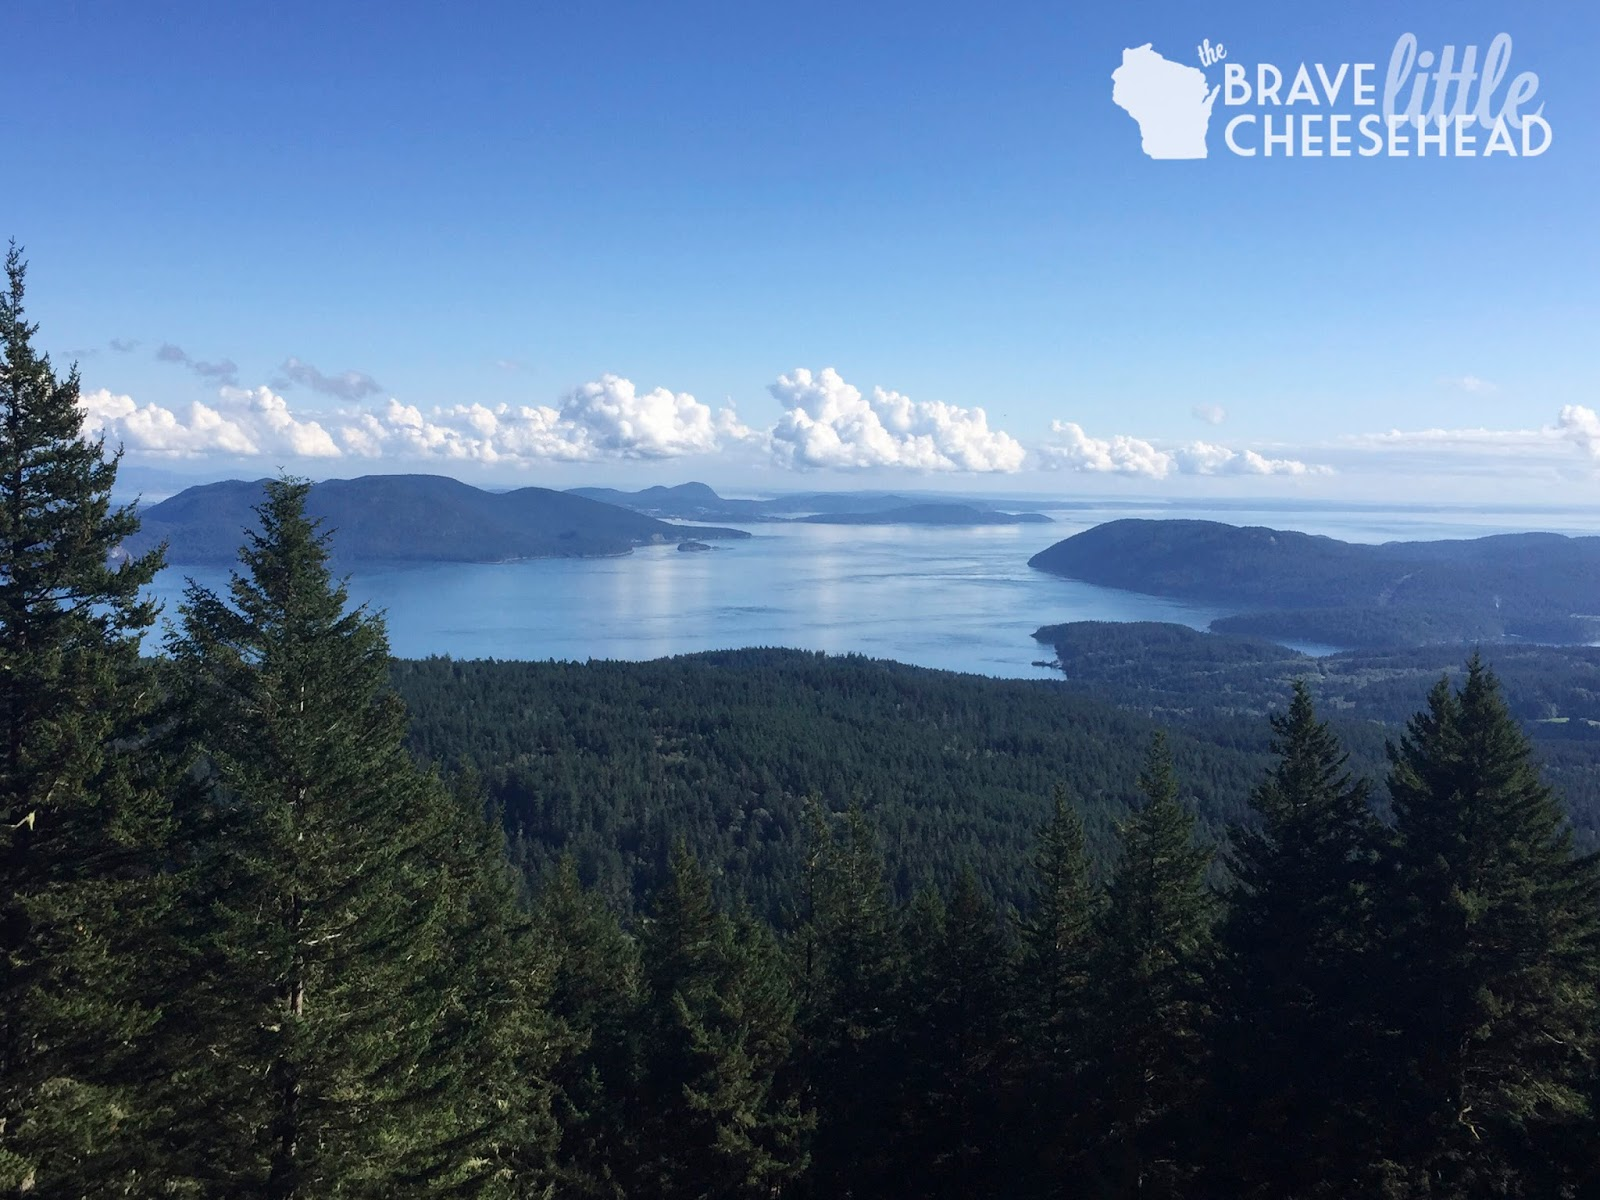 A Weekend in the San Juan Islands, WA | The Brave Little Cheesehead at bravelittlecheesehead.com